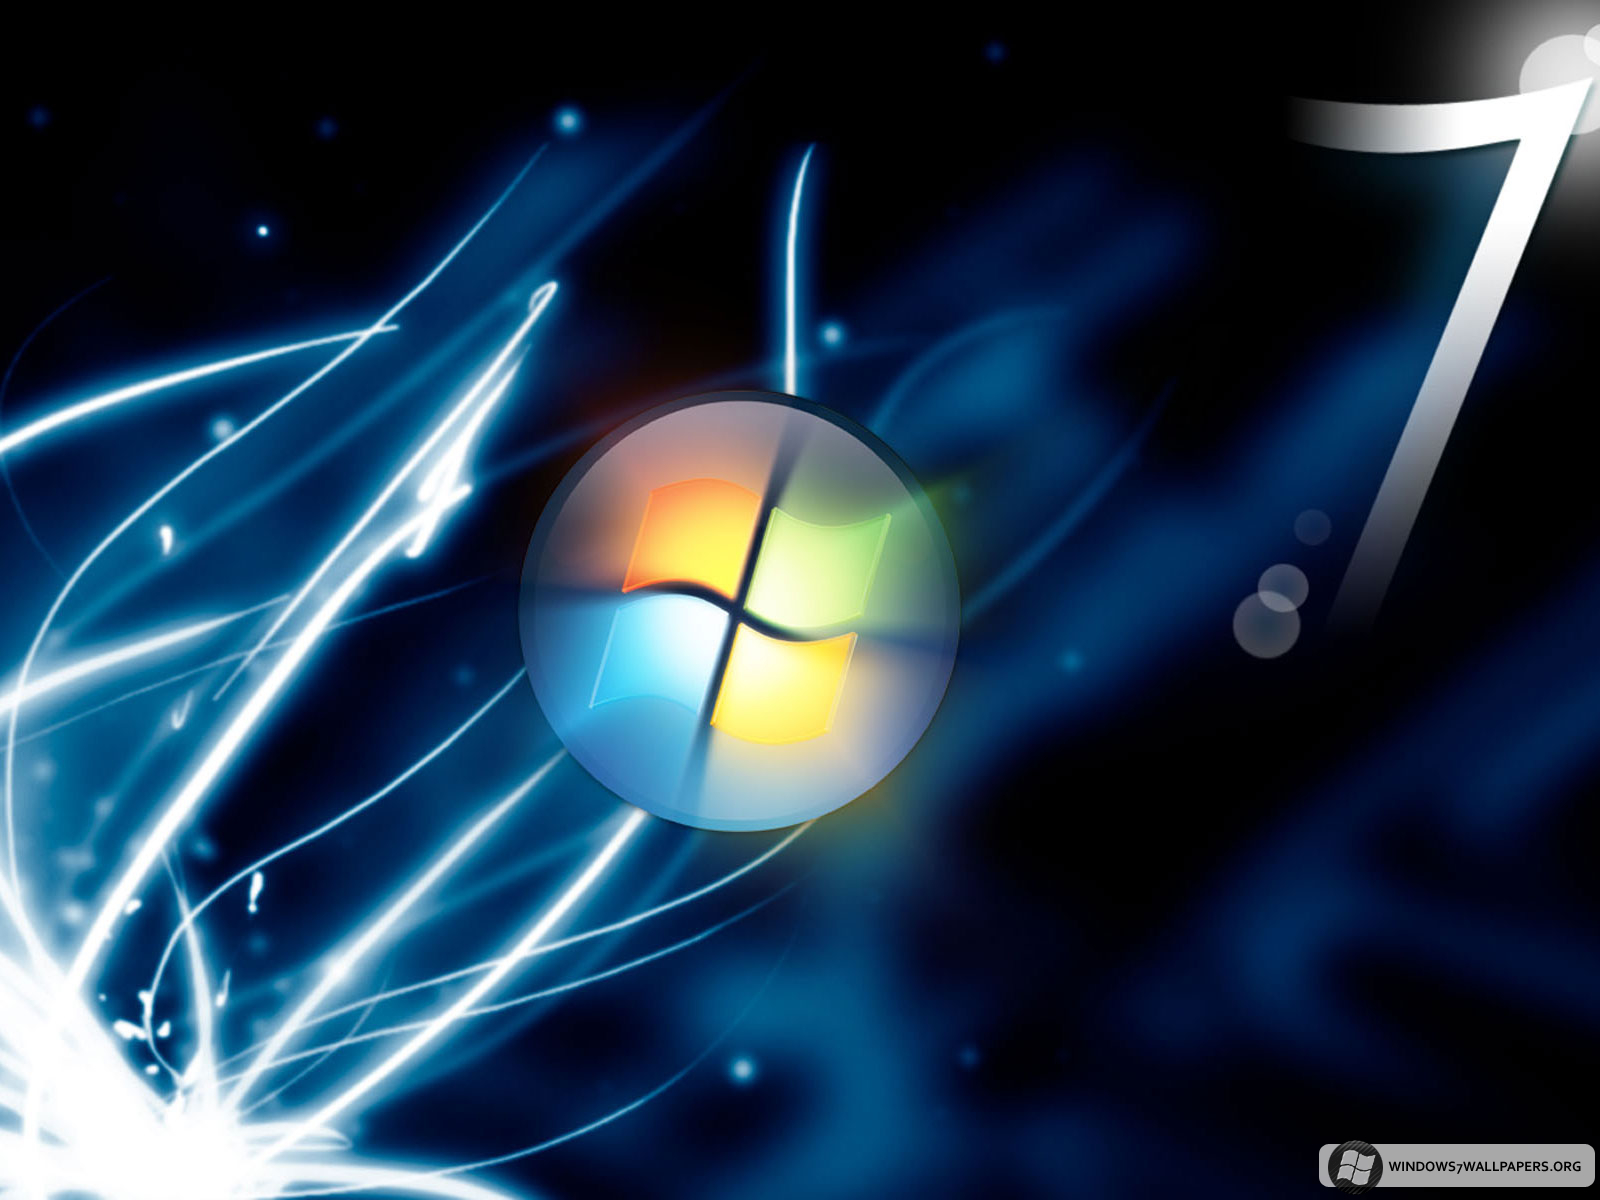 HD Wallpapers Pics: Hd 3d Wallpapers For Windows 7